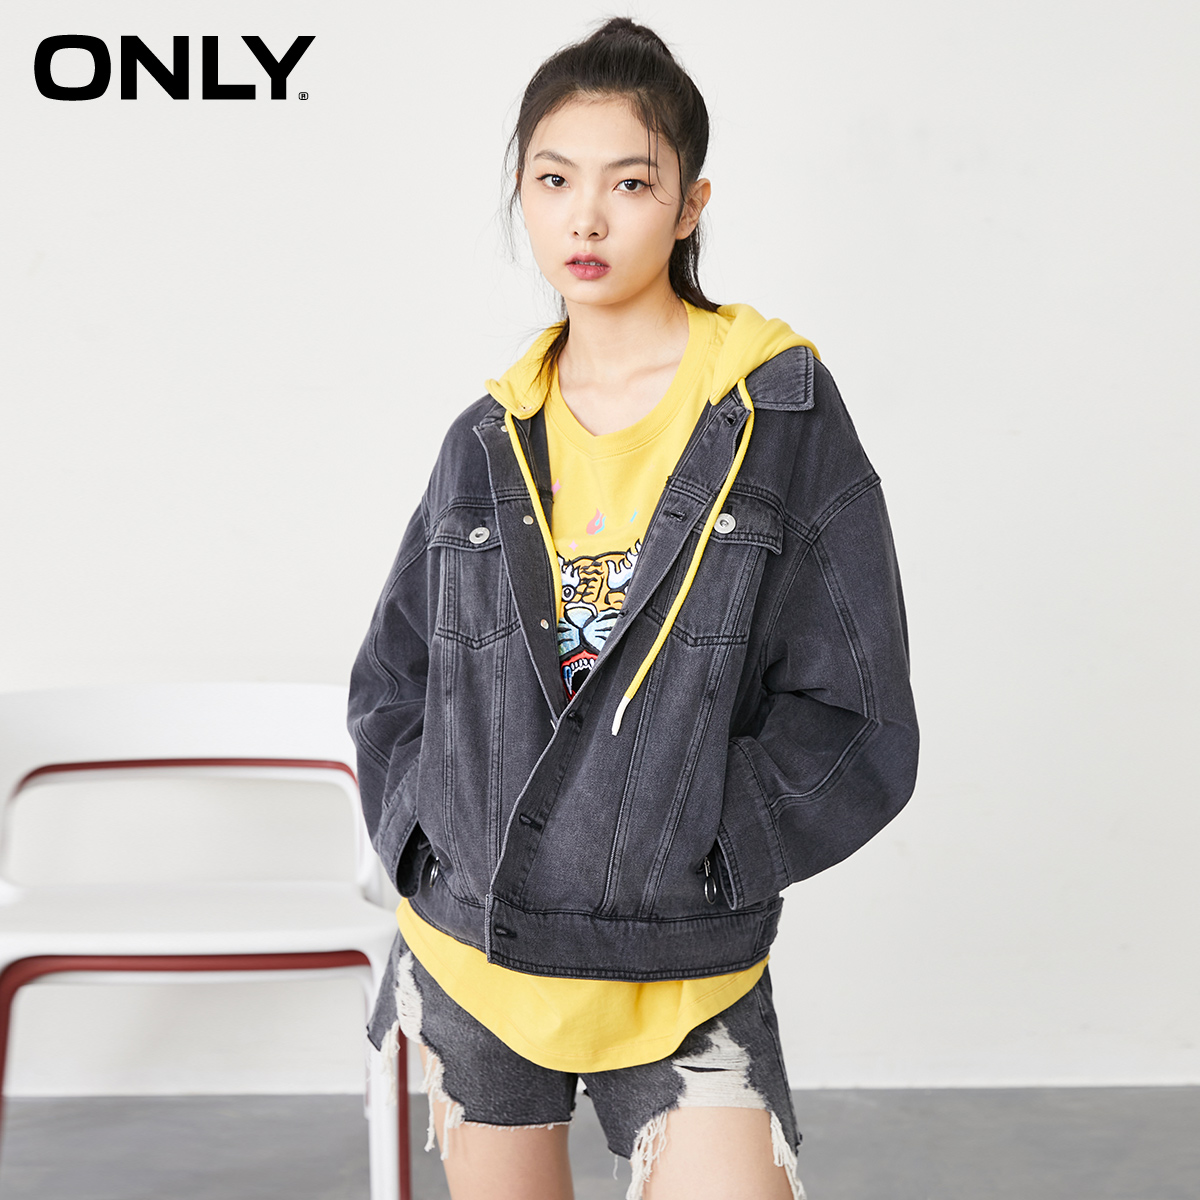 ONLY summer new fake two-piece short loose detachable hat denim jacket for women) 120354023